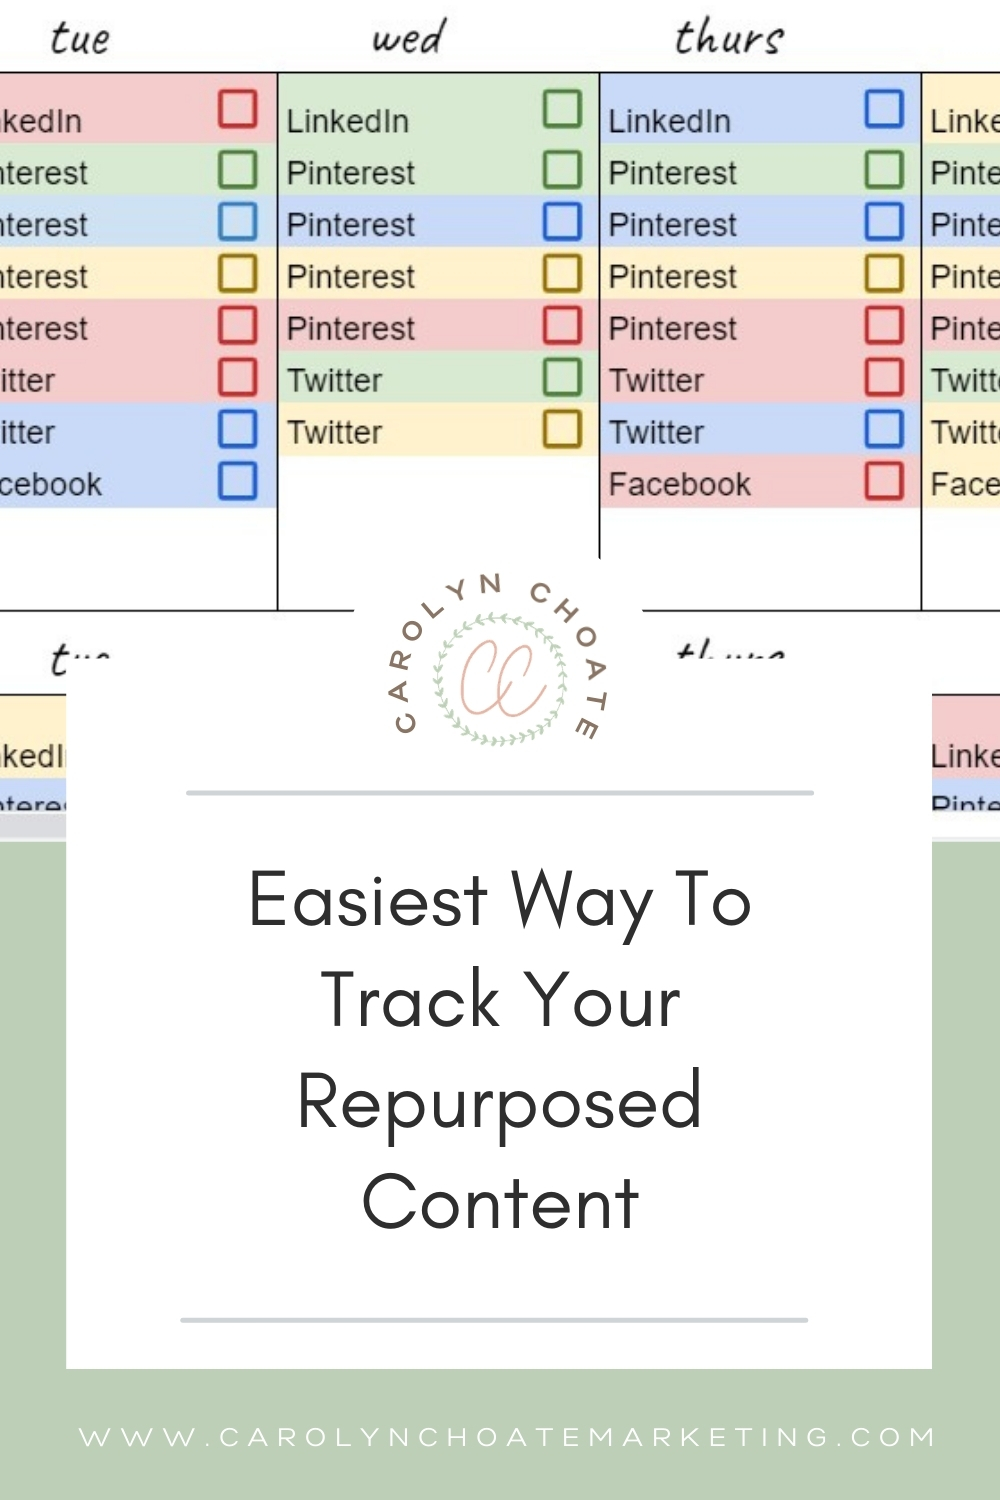 Easiest Way To Repurpose Content For Your Marketing